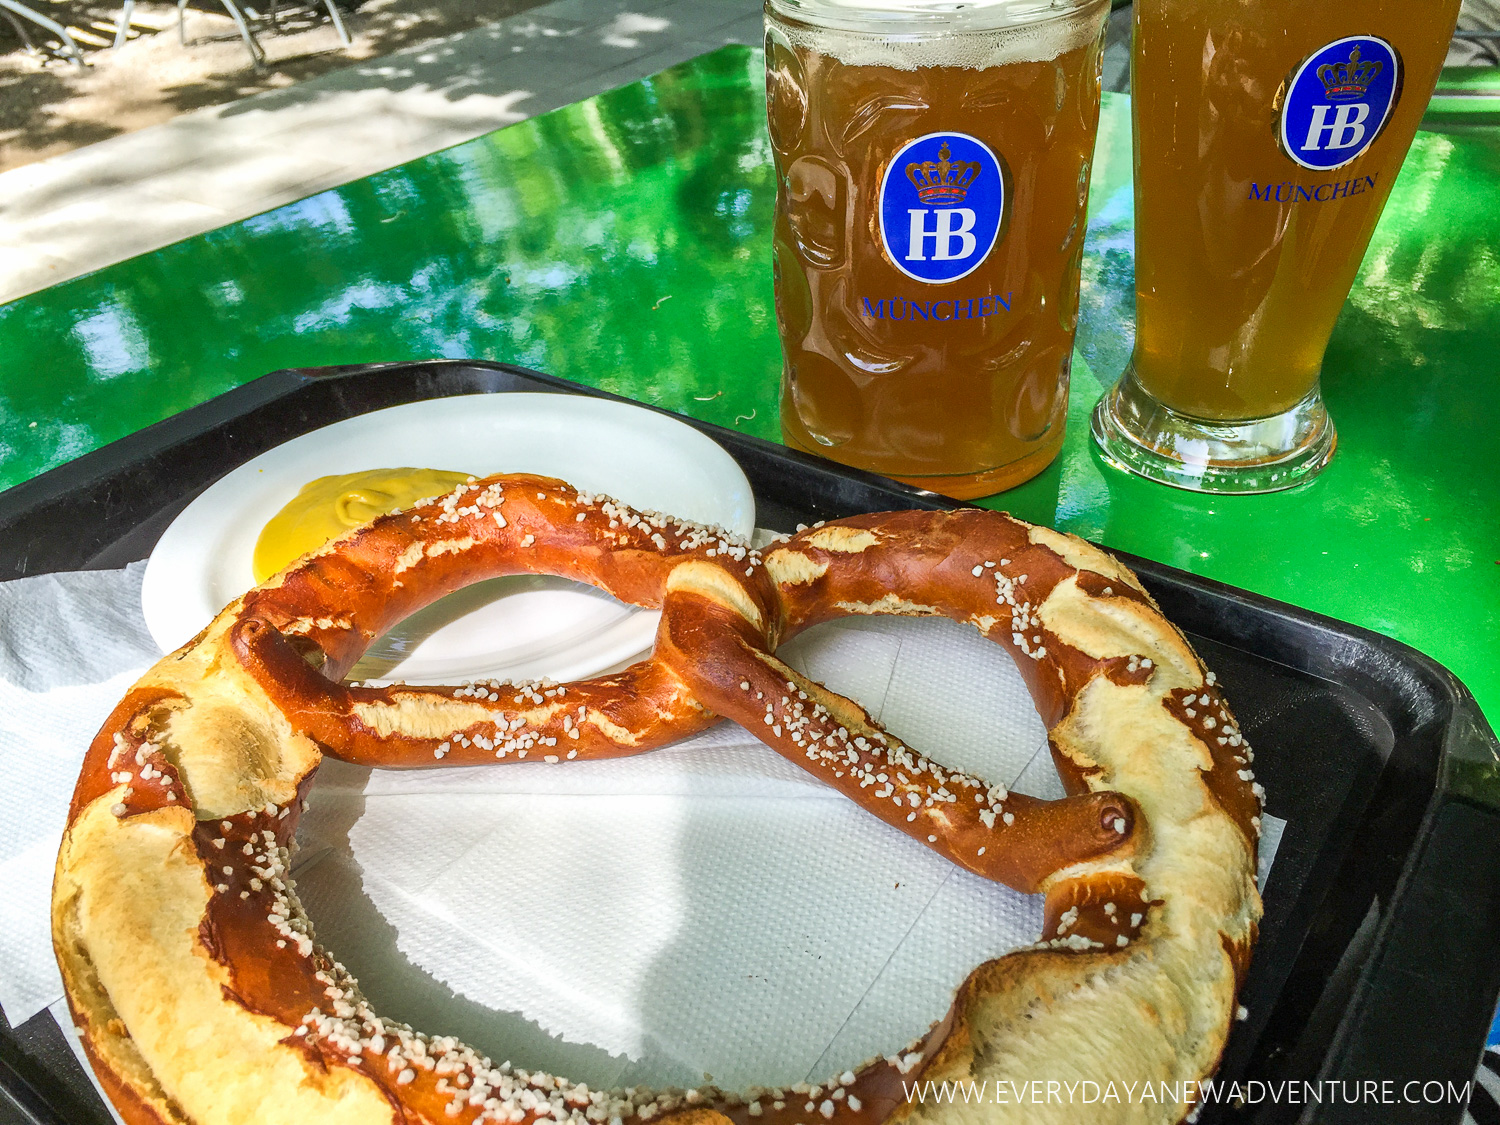 The pretzels and beer at the Chinese Tower Beer Garden in Munich were so tasty!